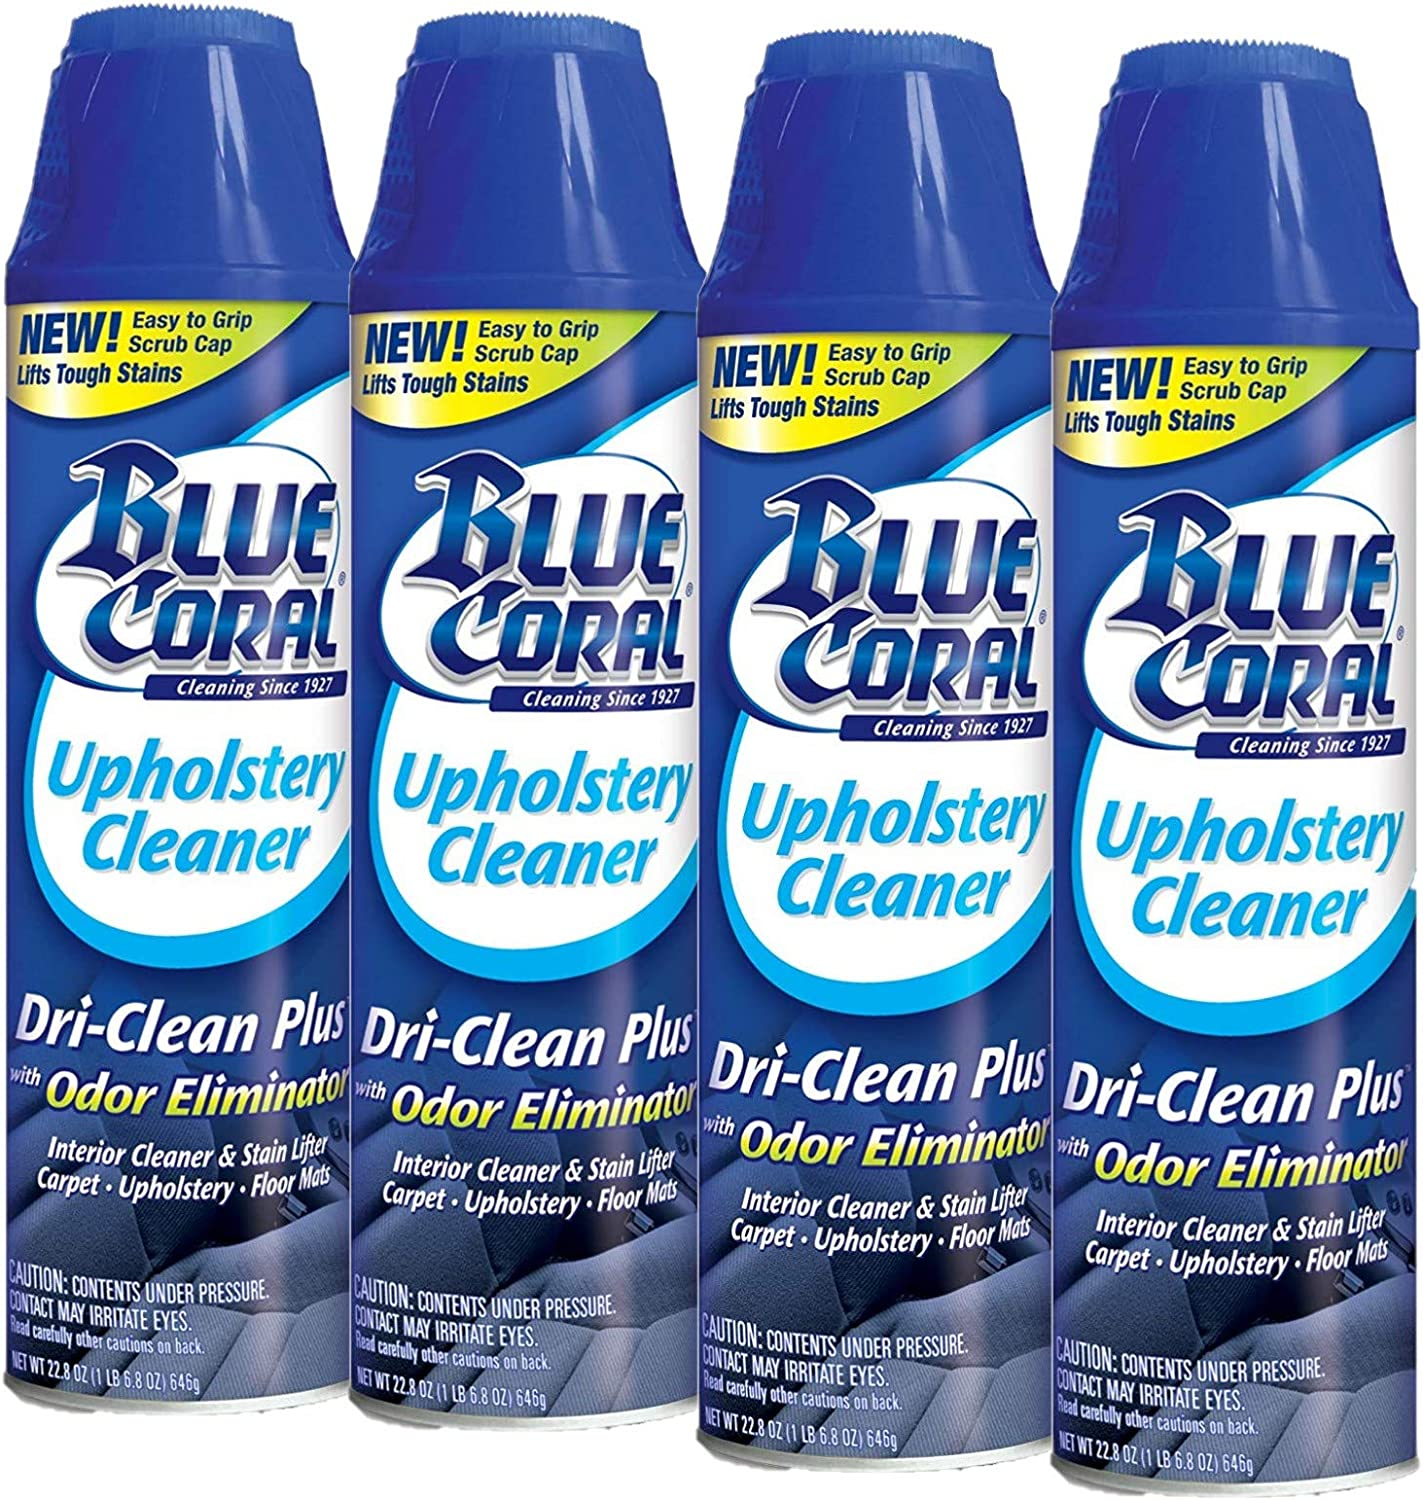 Blue Coral DC22 Upholstery Cleaner Dri-Clean Plus with Odor Eliminator, 22.8 oz. Aerosol, Pack of 4